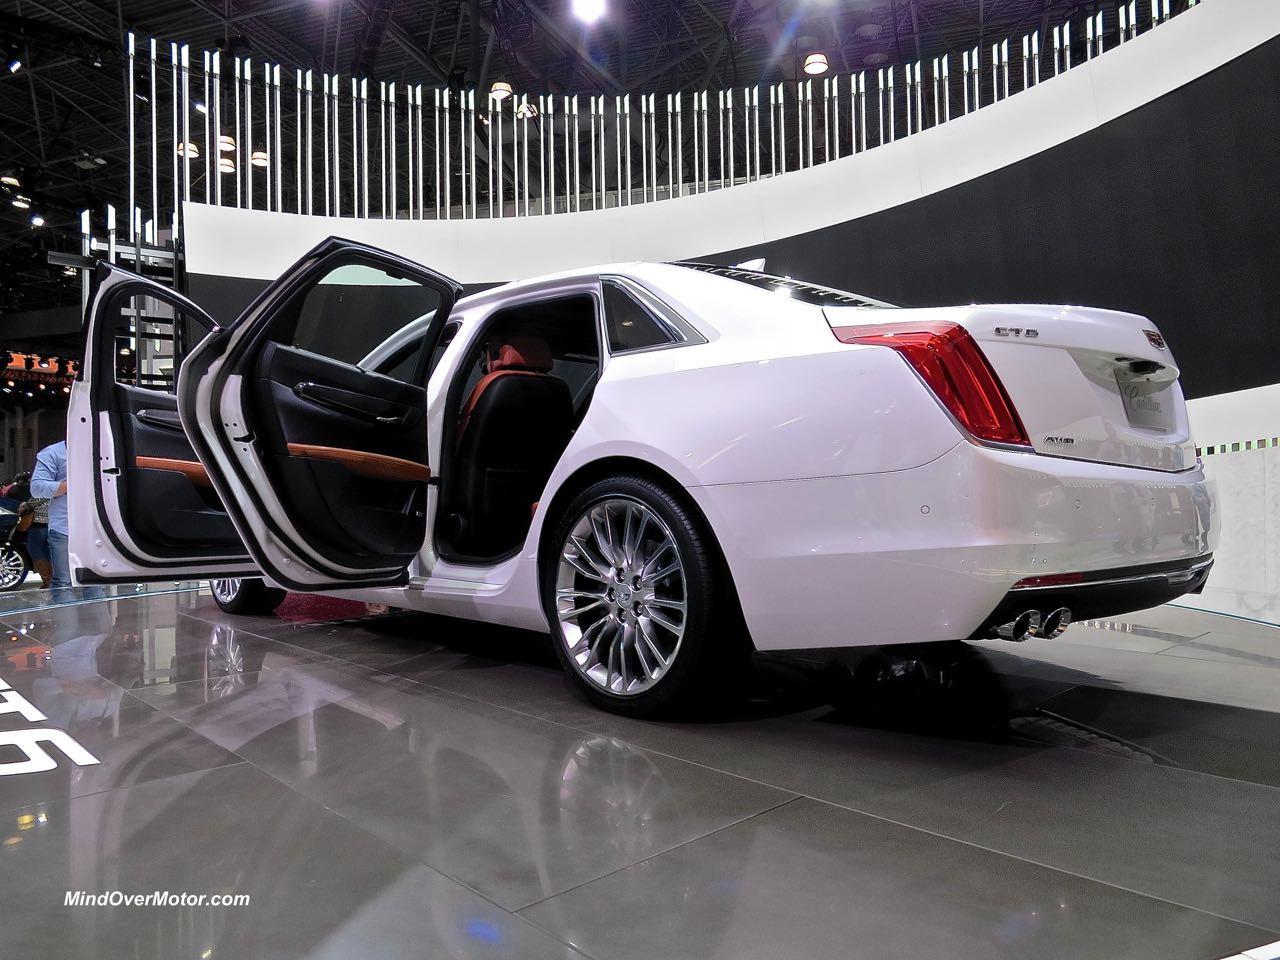 Cadillac CT6 Rear Doors Open